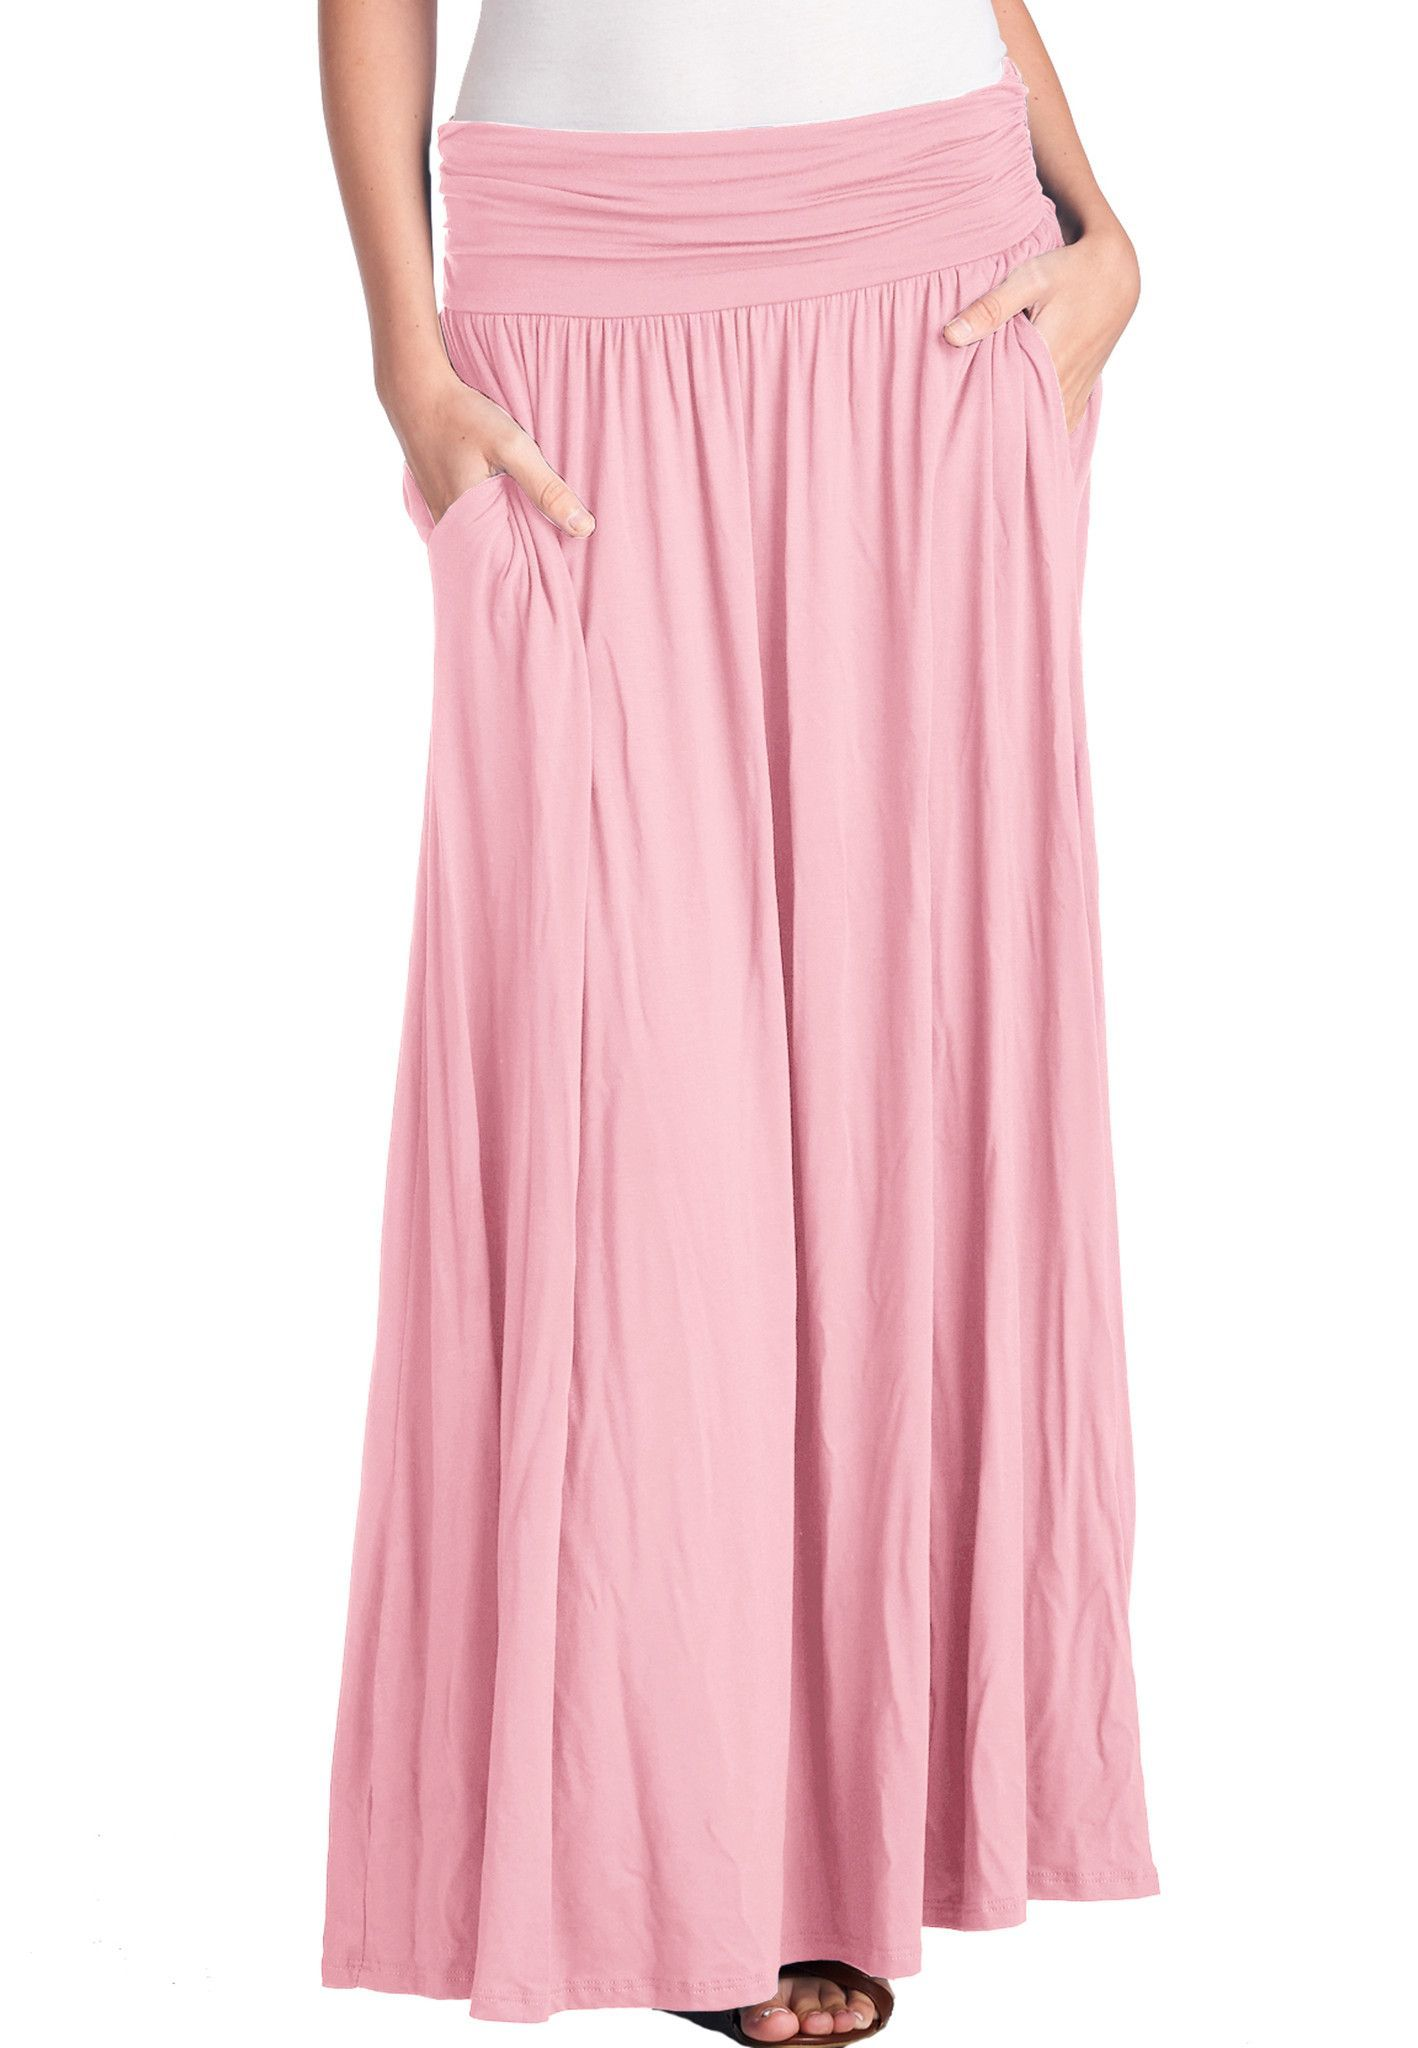 59e3d749675b75 High Waist Fold Over Shirring Maxi Skirt with Pockets | Products ...